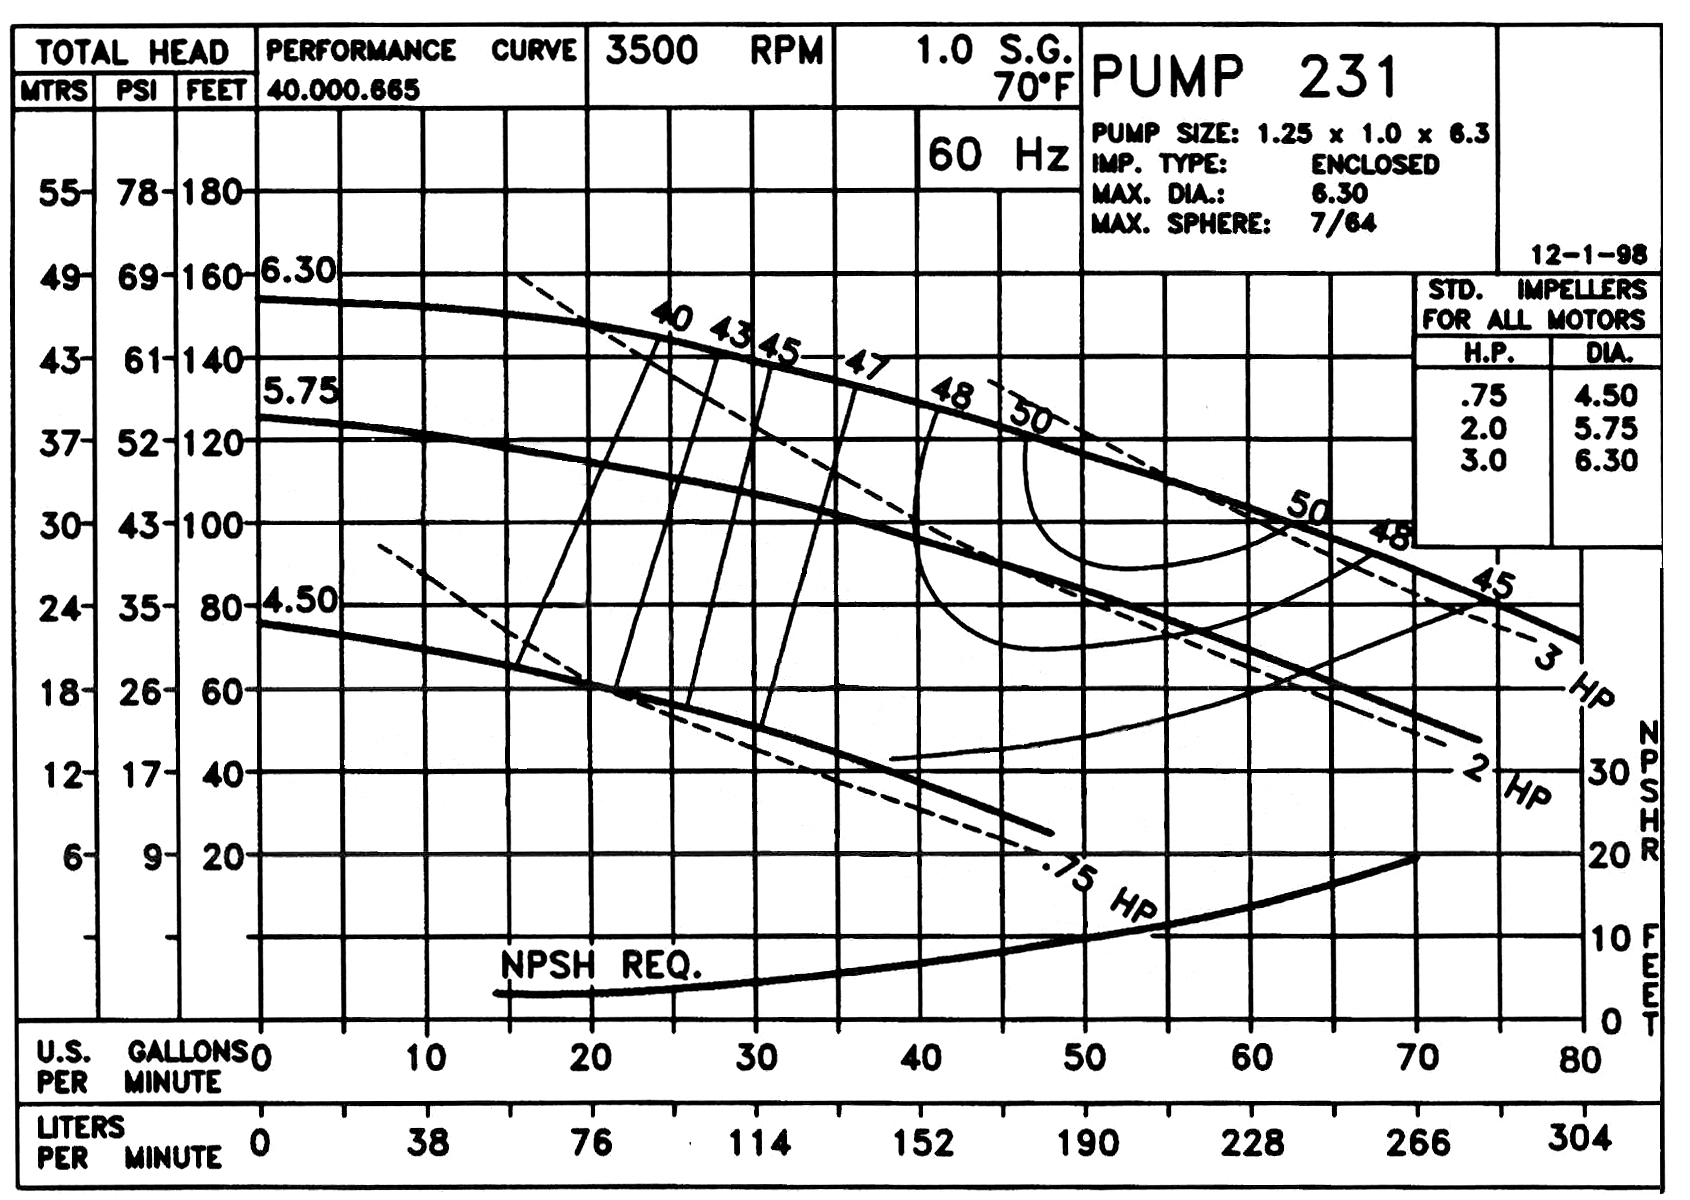 Sizing pumps and valves. : ChemicalEngineering